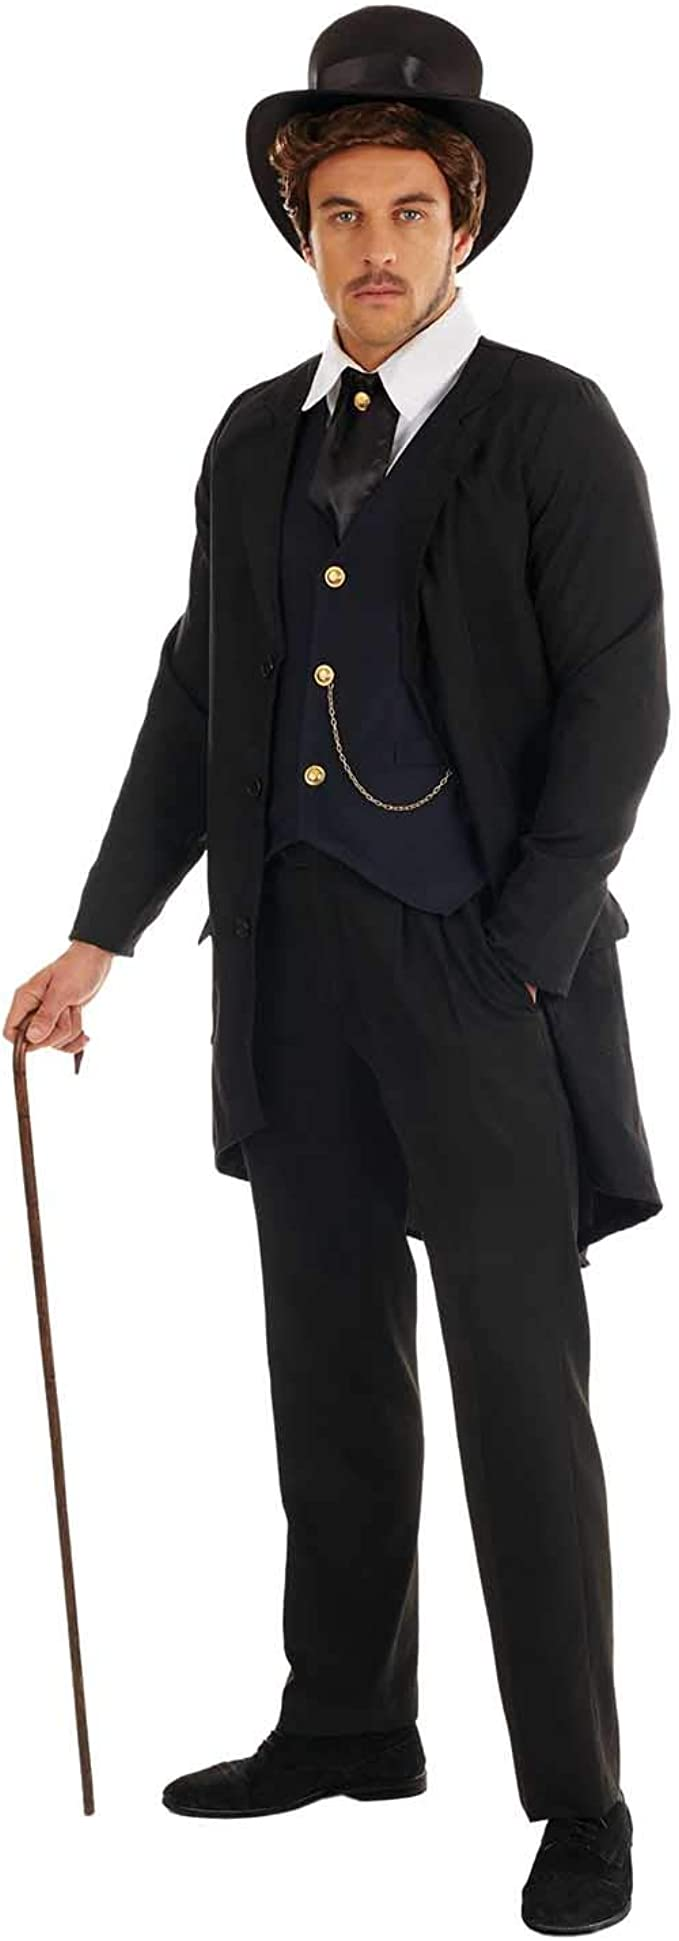 Men's Steampunk Clothing, Costumes, Fashion Adult Victorian Man Fancy Dress Costume £24.49 AT vintagedancer.com